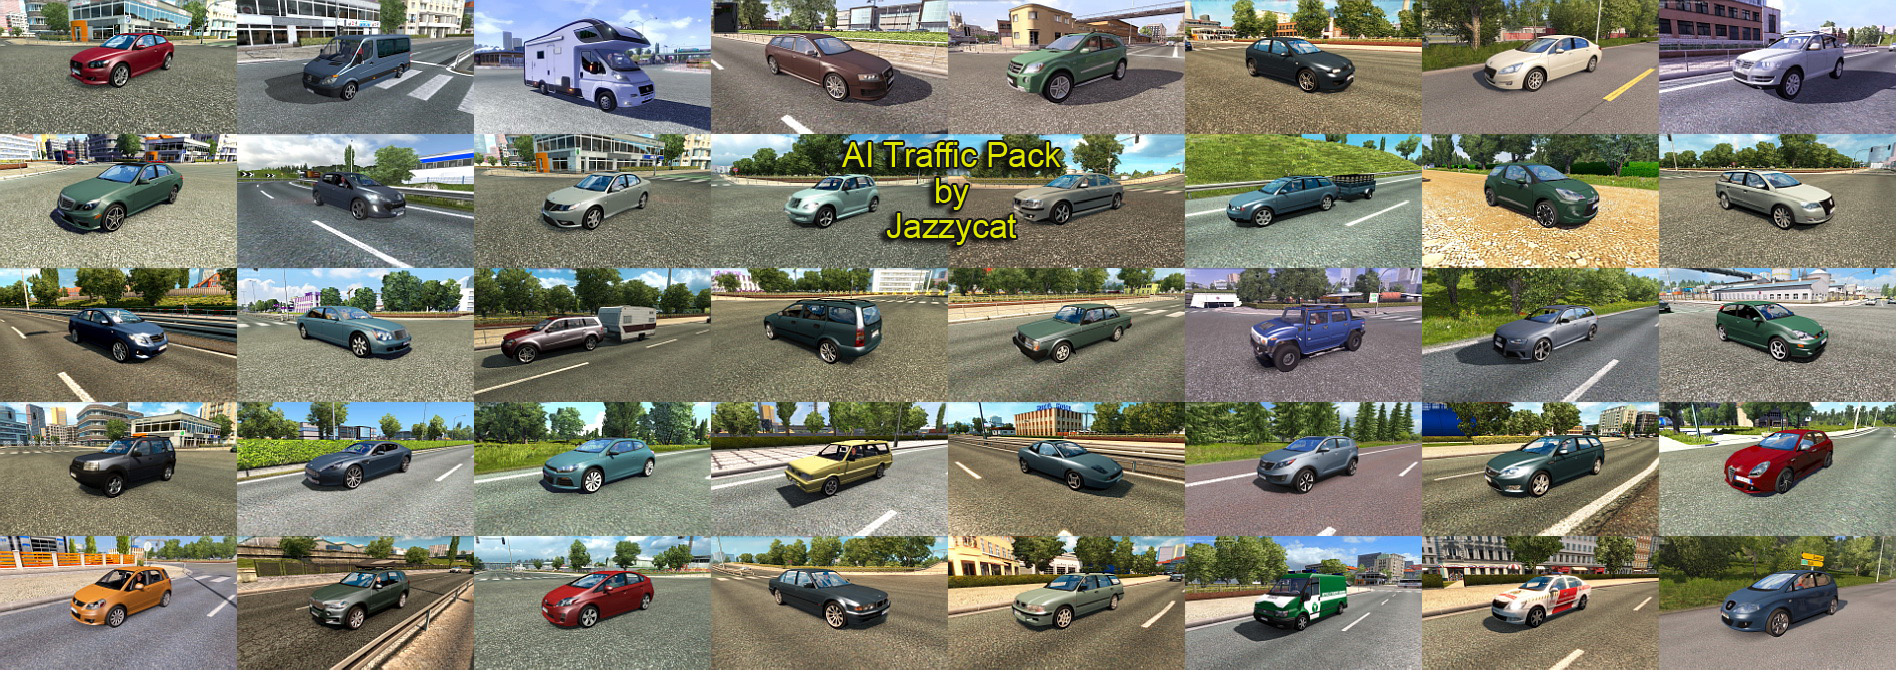 AI Traffic Pack v7.4 by Jazzycat